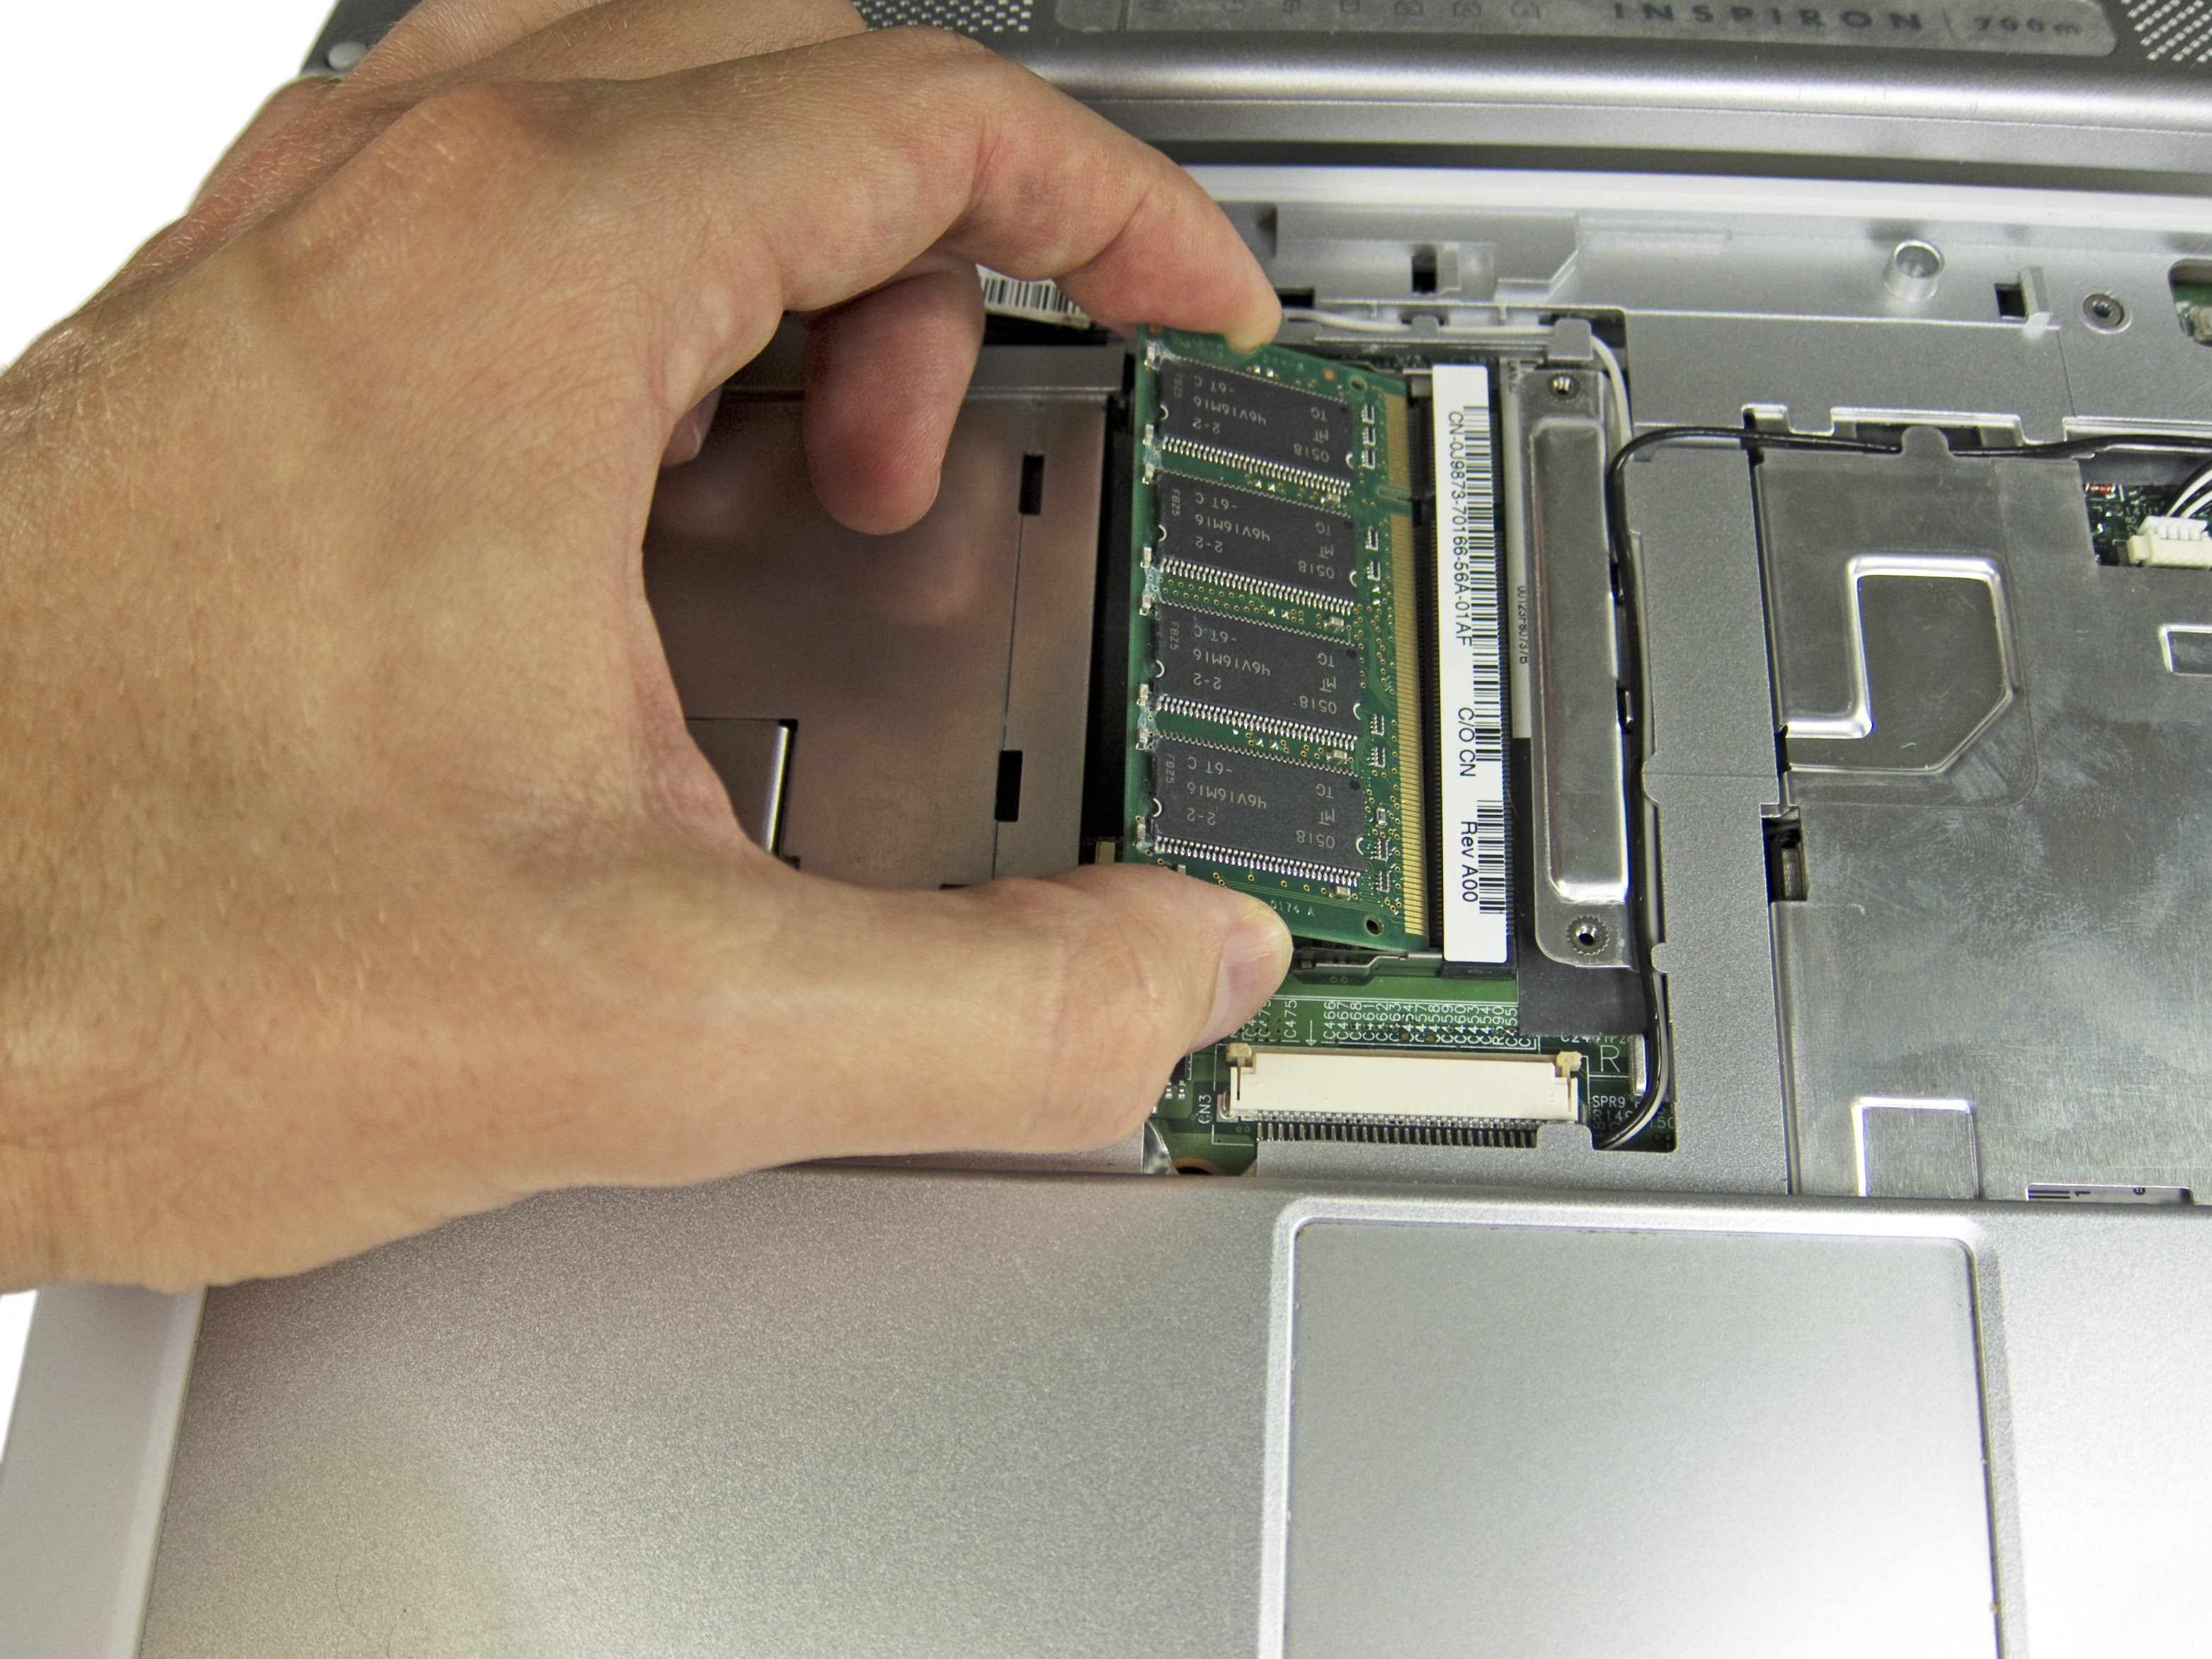 Dell Inspiron 700m RAM Replacement